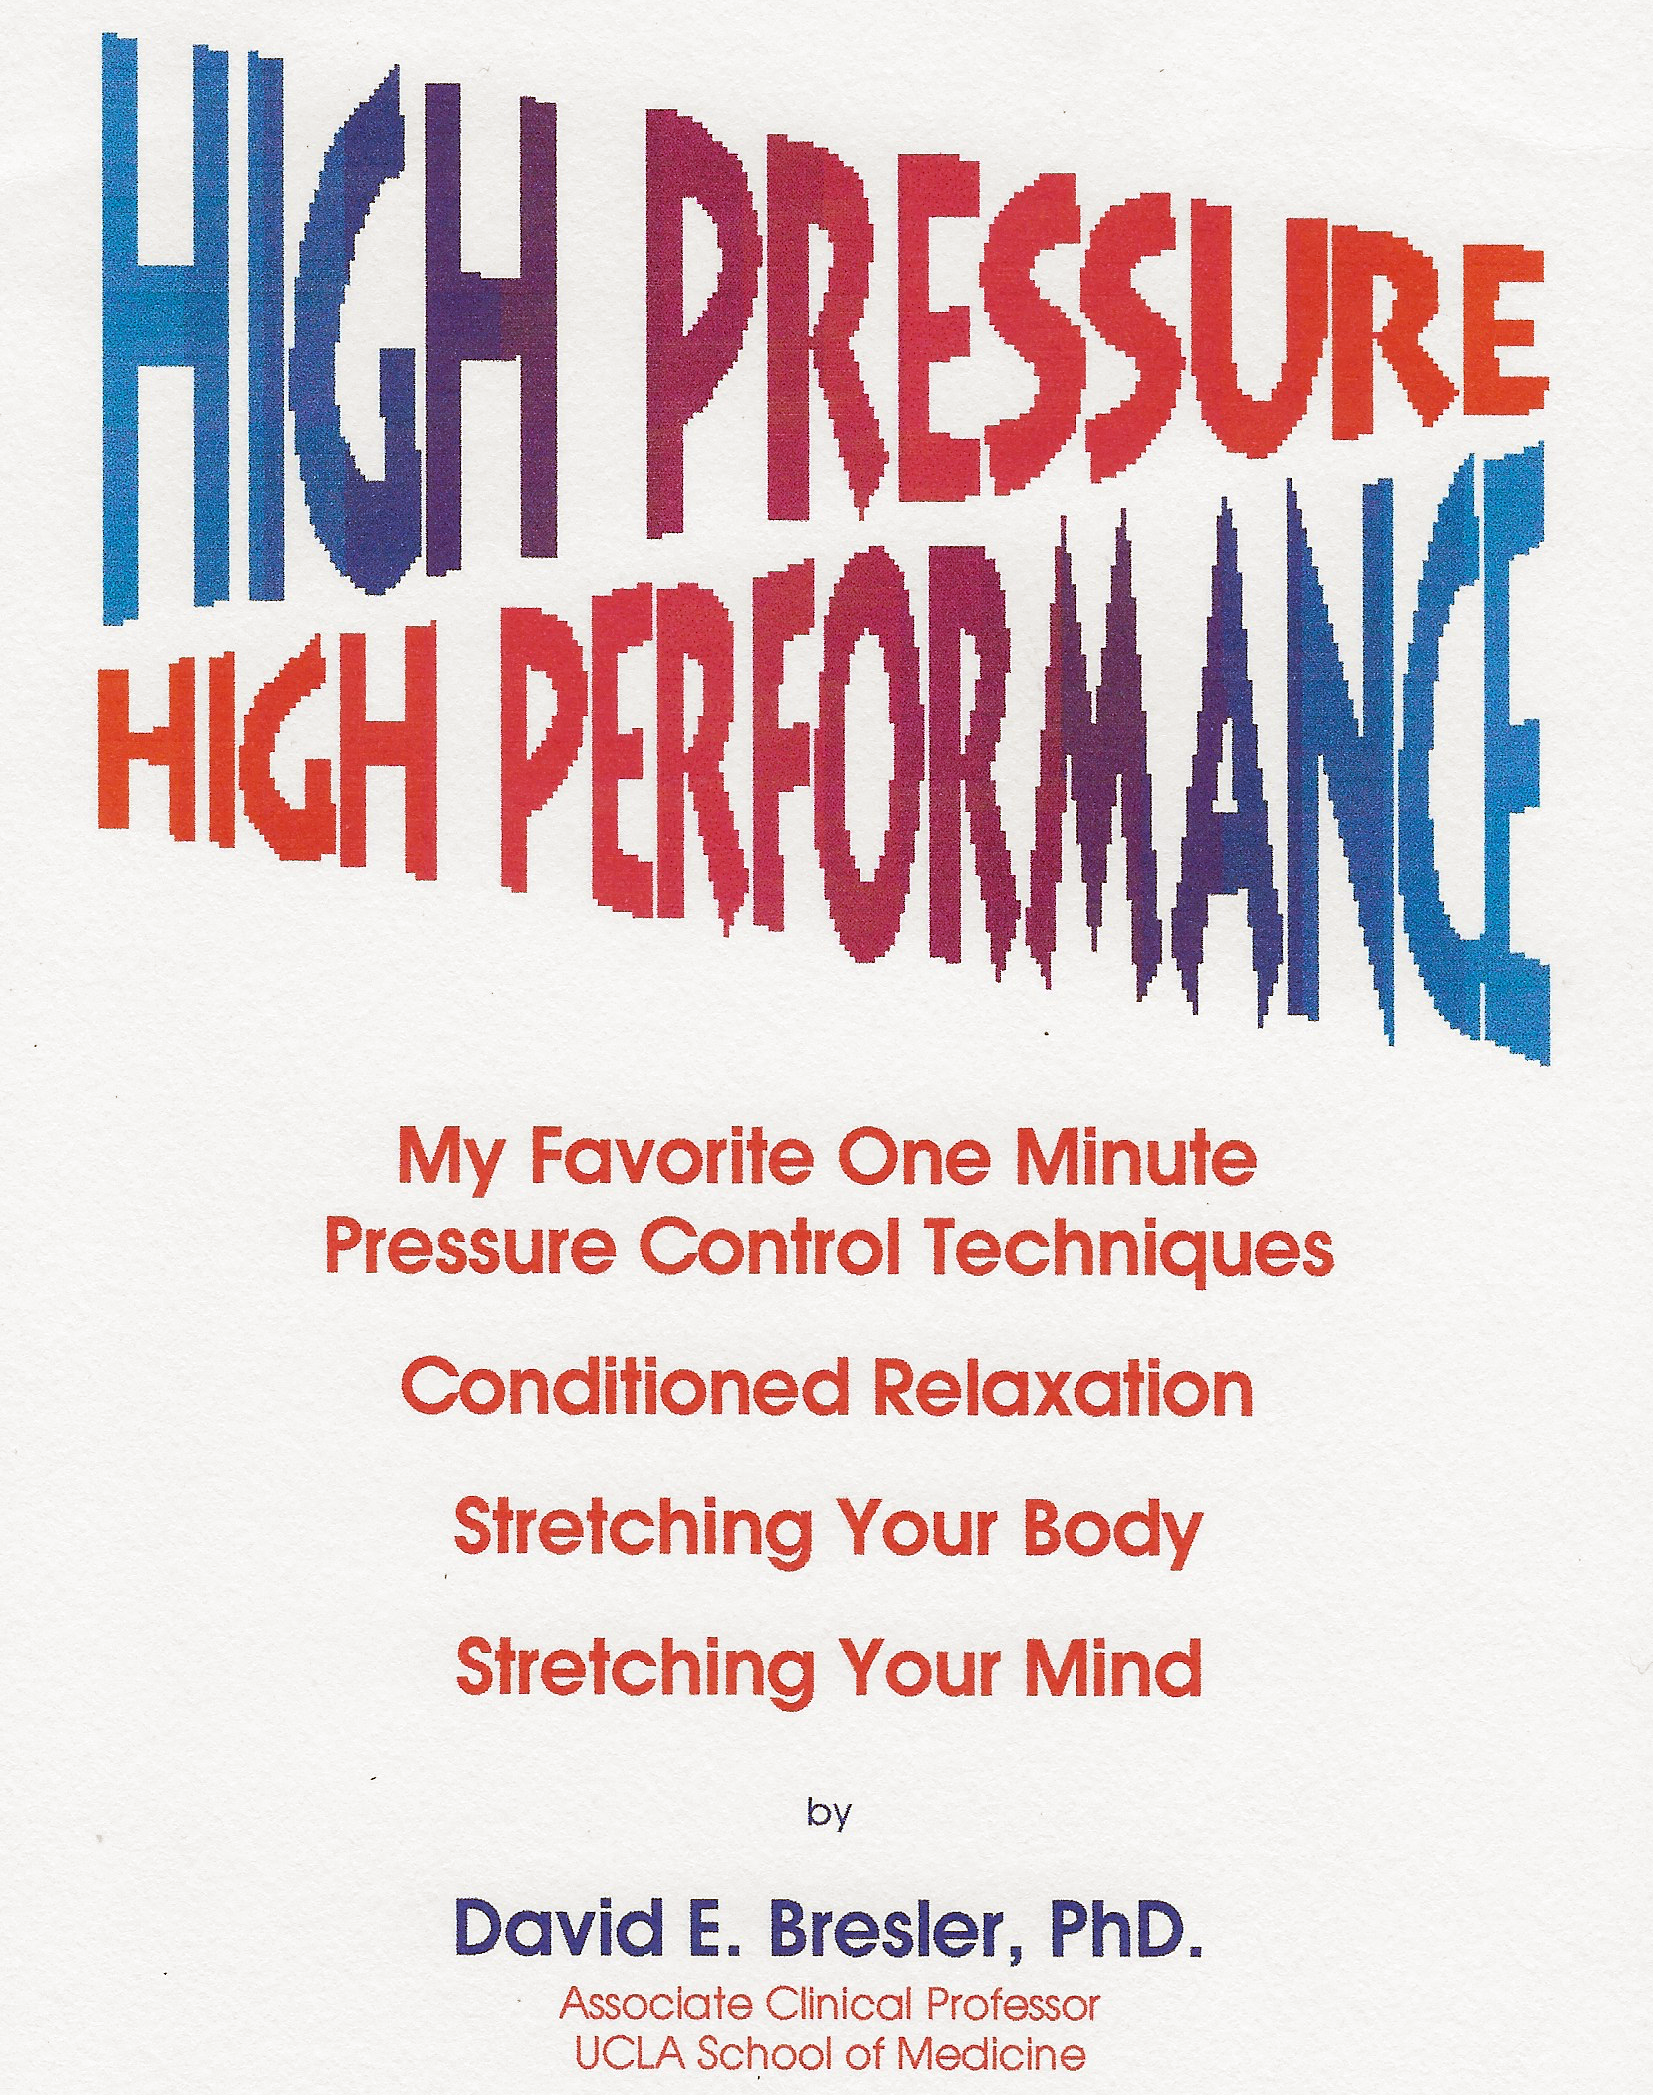 High Pressure High Performance